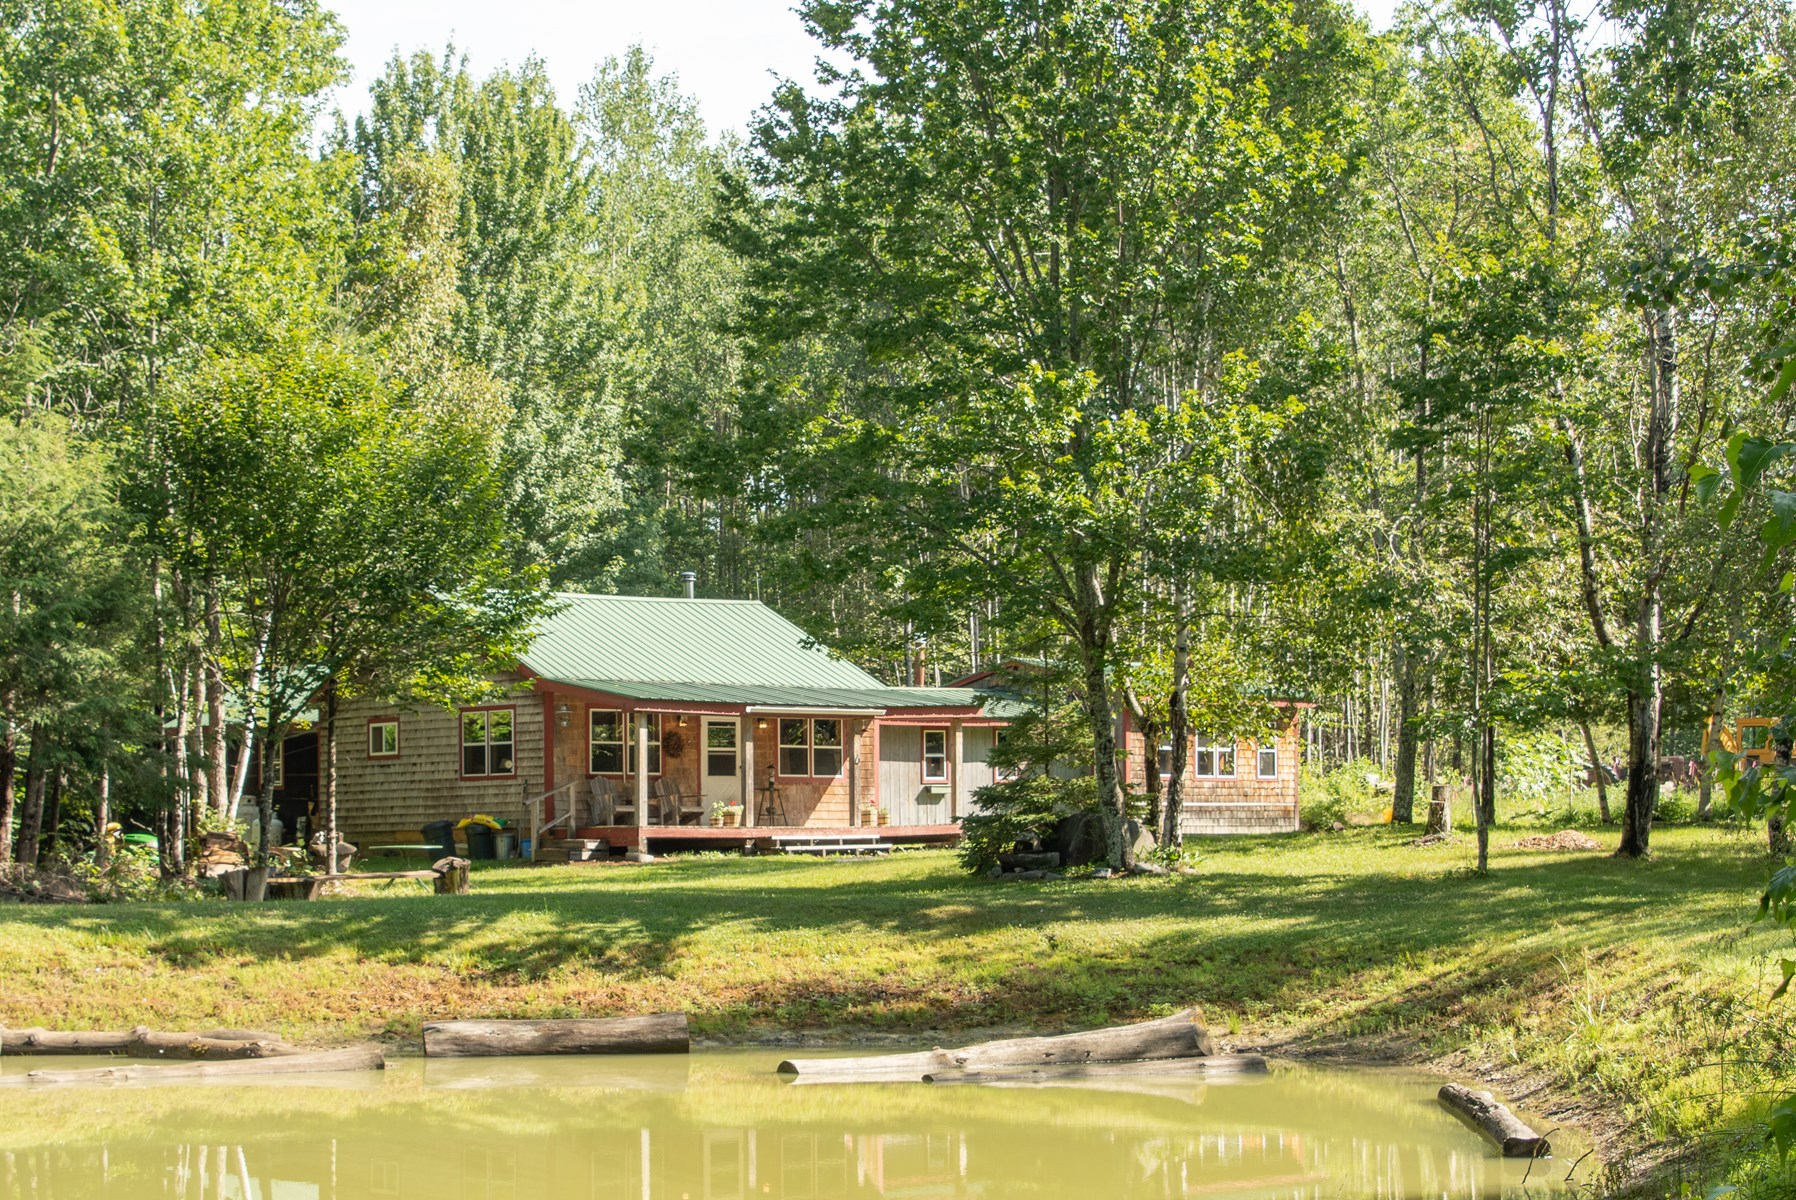 Recreational Camp for Sale in Maine